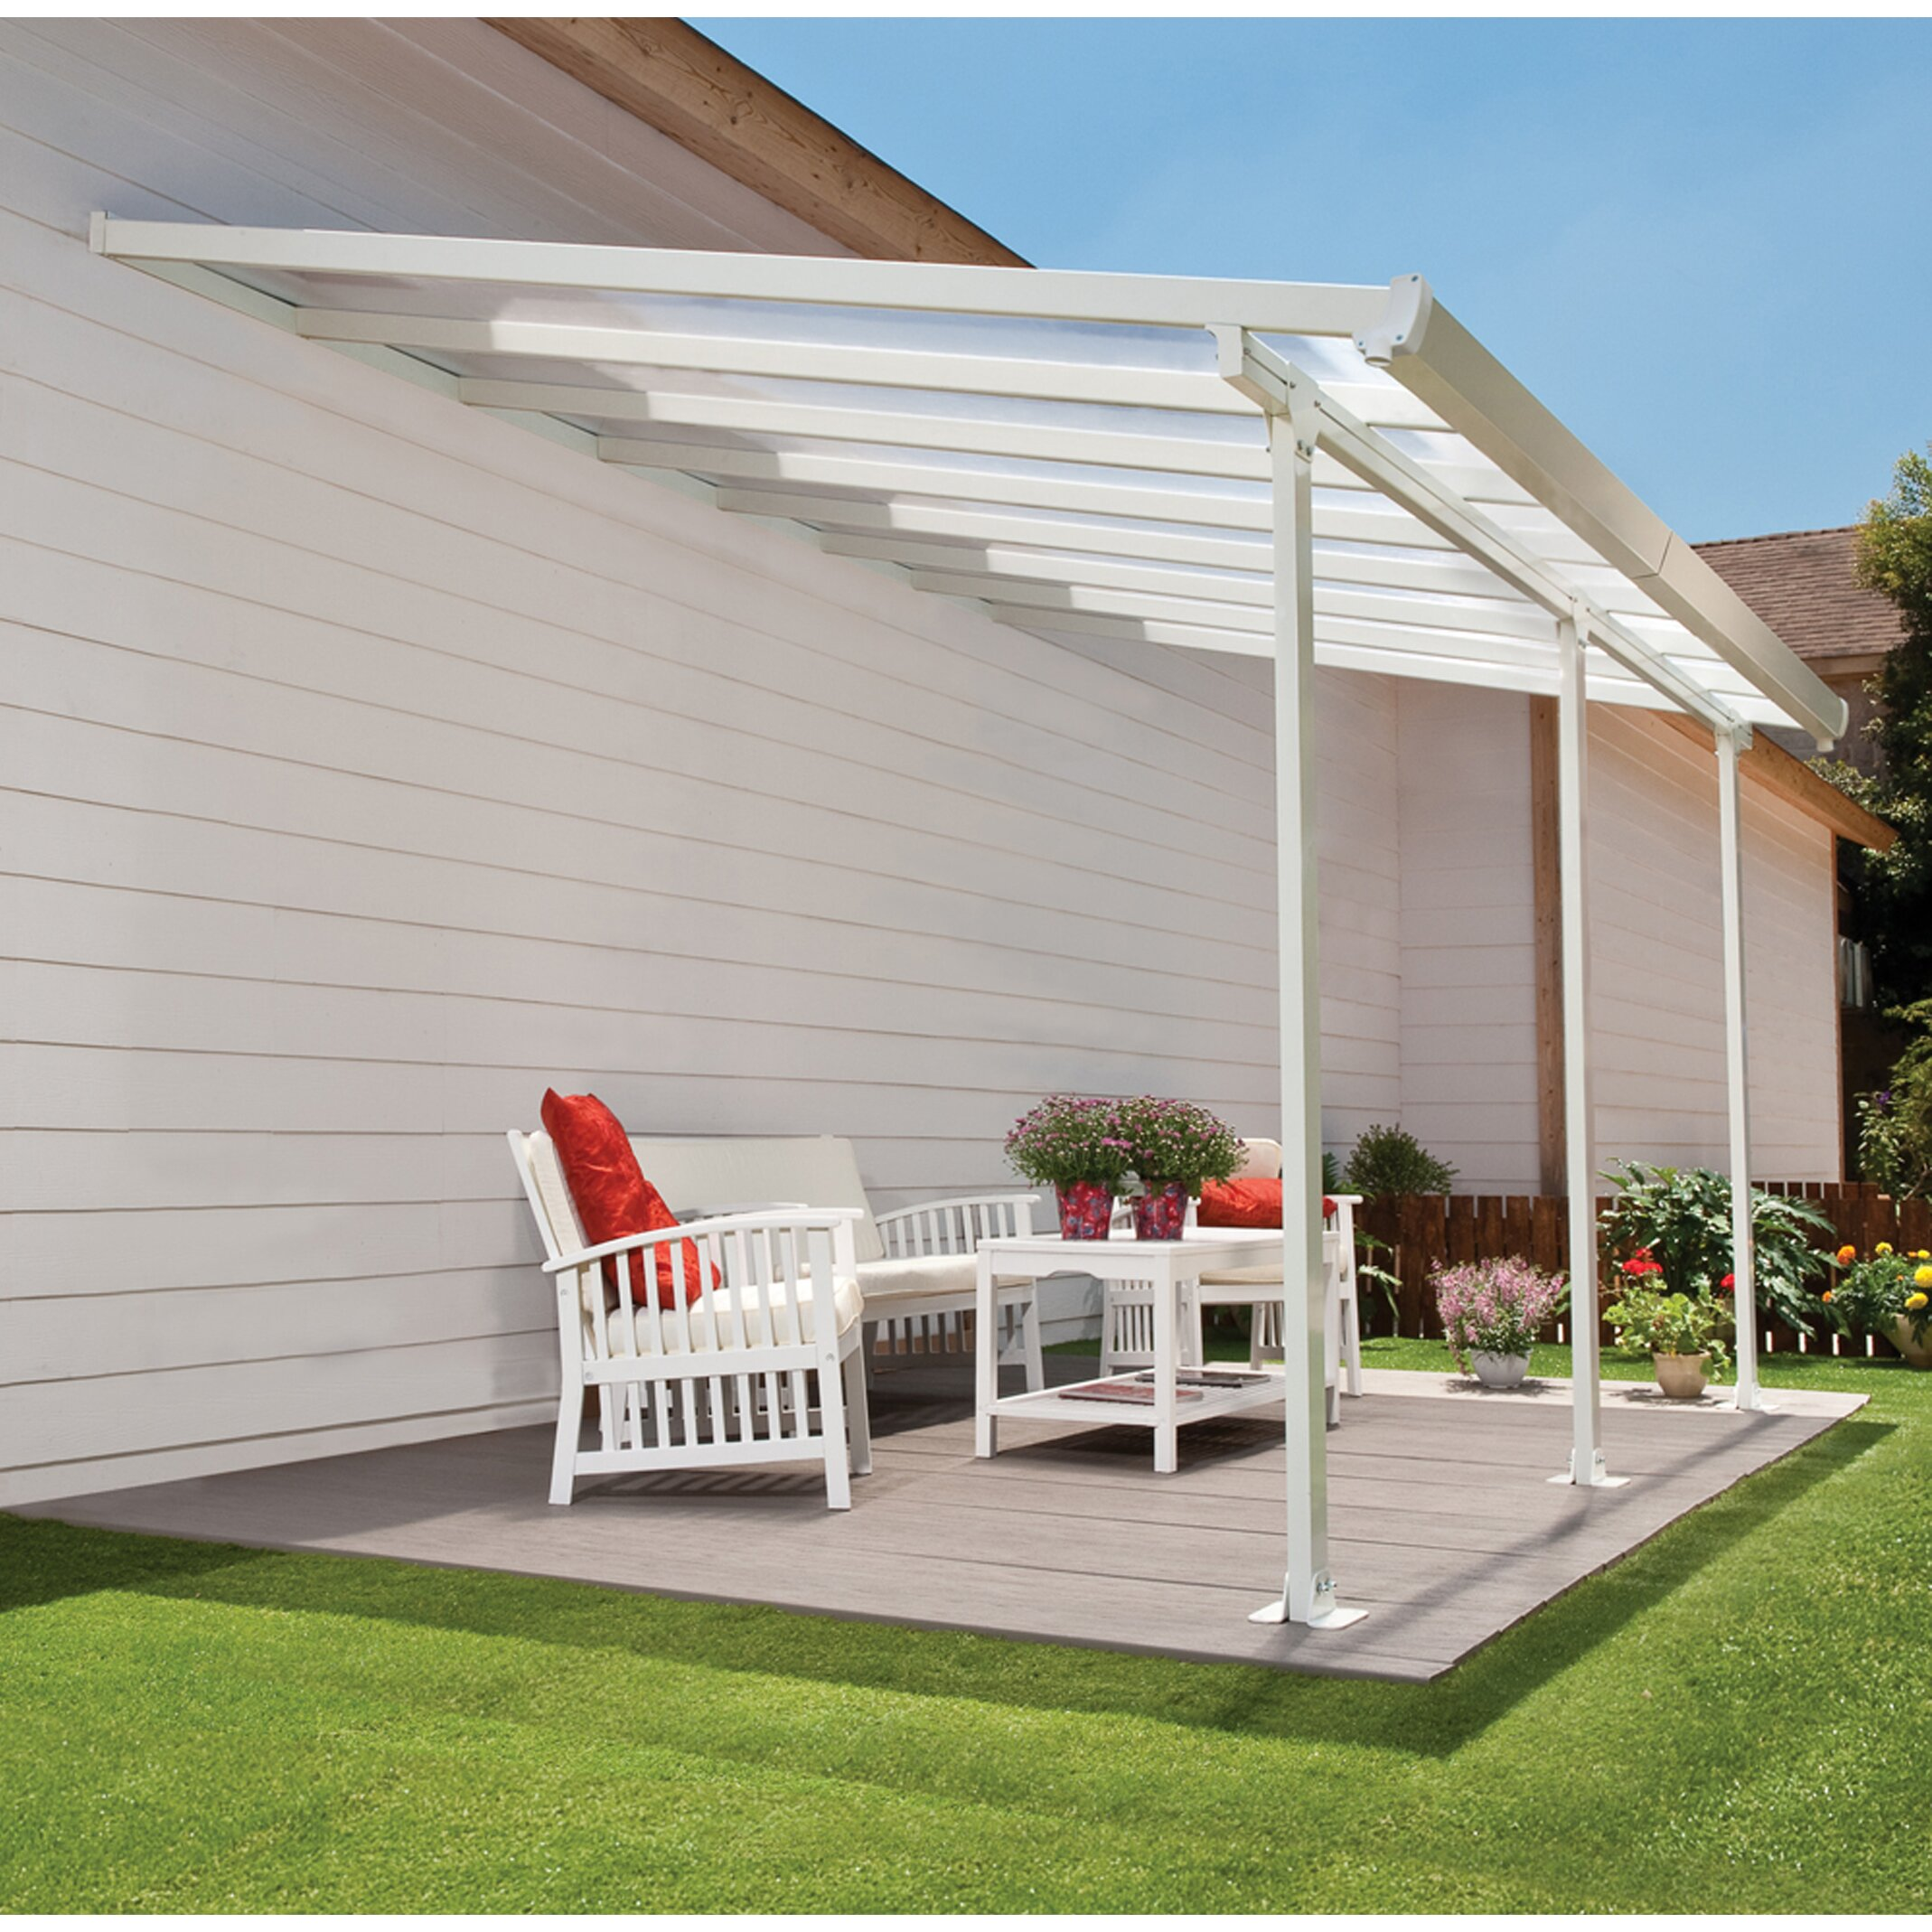 Feria 10ft H X 26ft W X 13ft D Patio Cover Awning